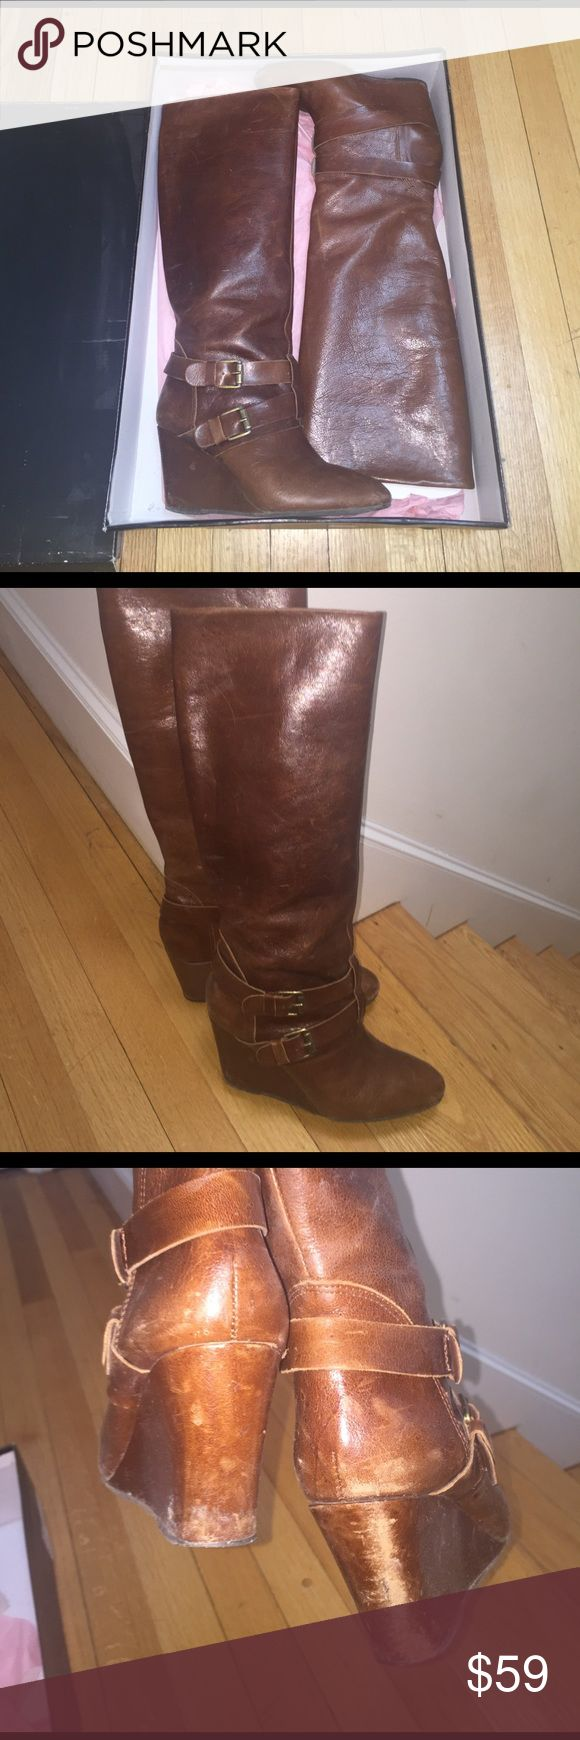 Steven by Steve Madden Boots Cognac buckle knee high wedge boots by Steven By Steve Madden. Very good condition!! Discoloration on back of heel from driving but can probably be restored with conditioning of leather. Steven by Steve Madden Shoes Heeled Boots